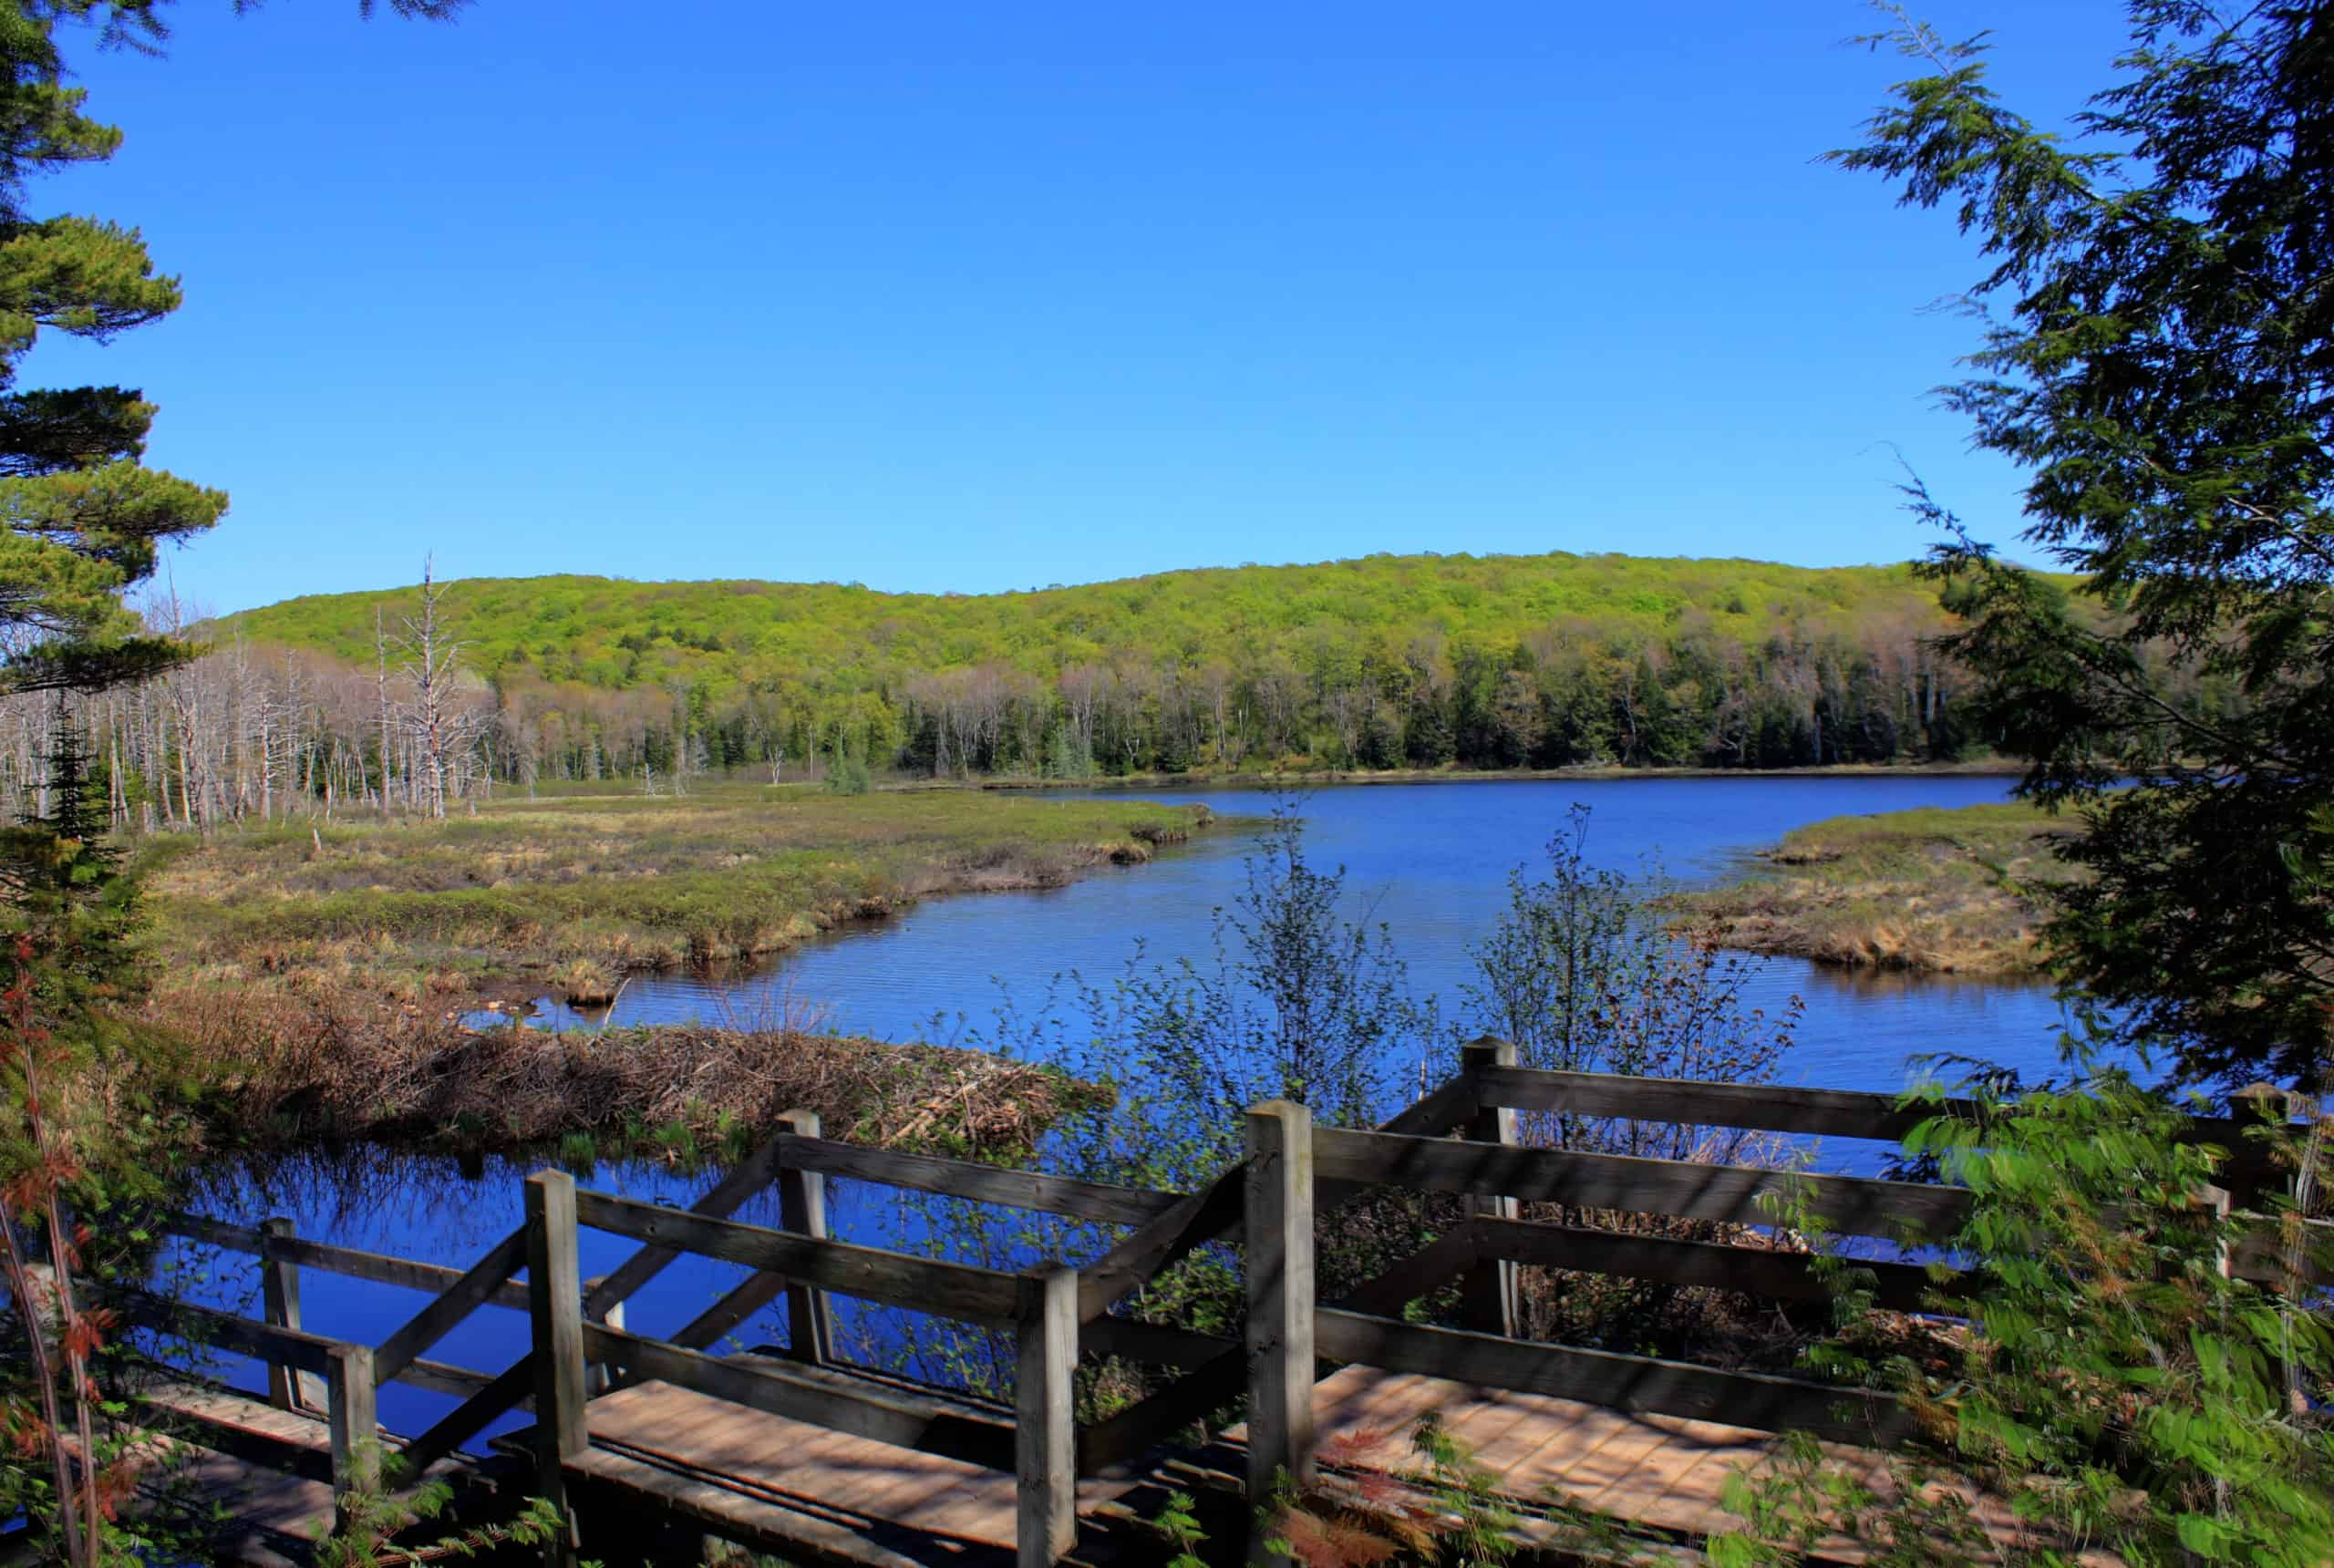 Porcupine Mountains State Park for Camping in Michigan